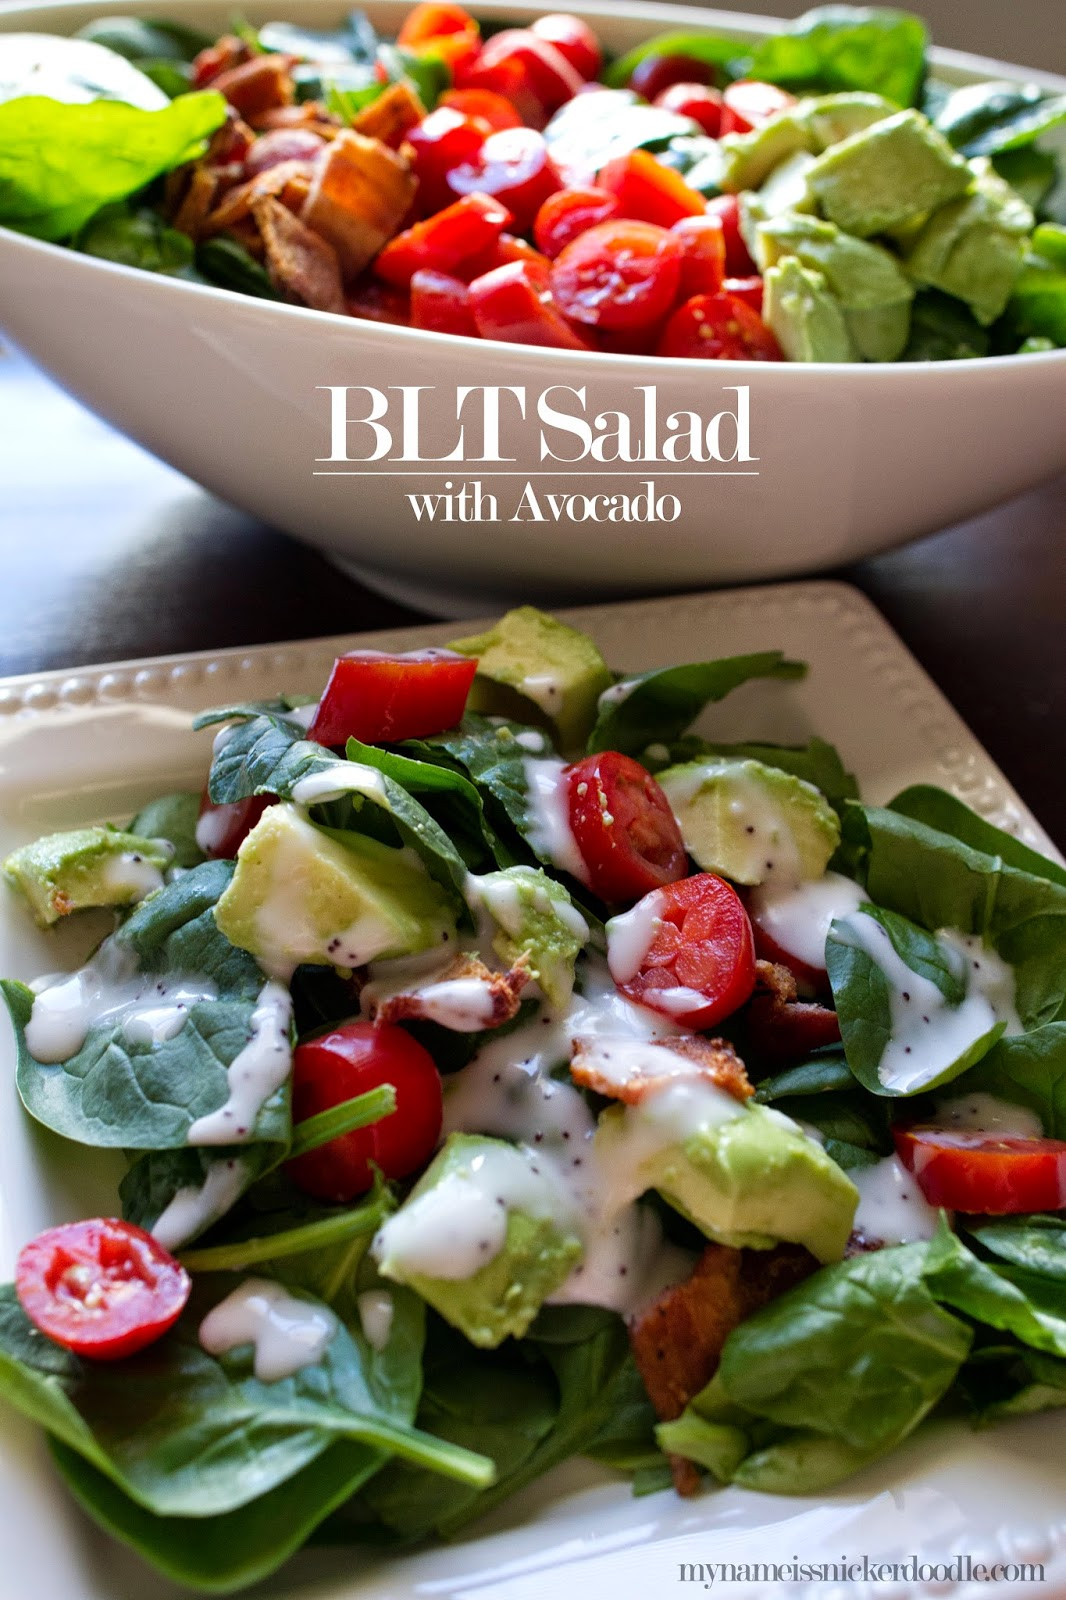 My Name Is Snickerdoodle: BLT Salad with Avocado